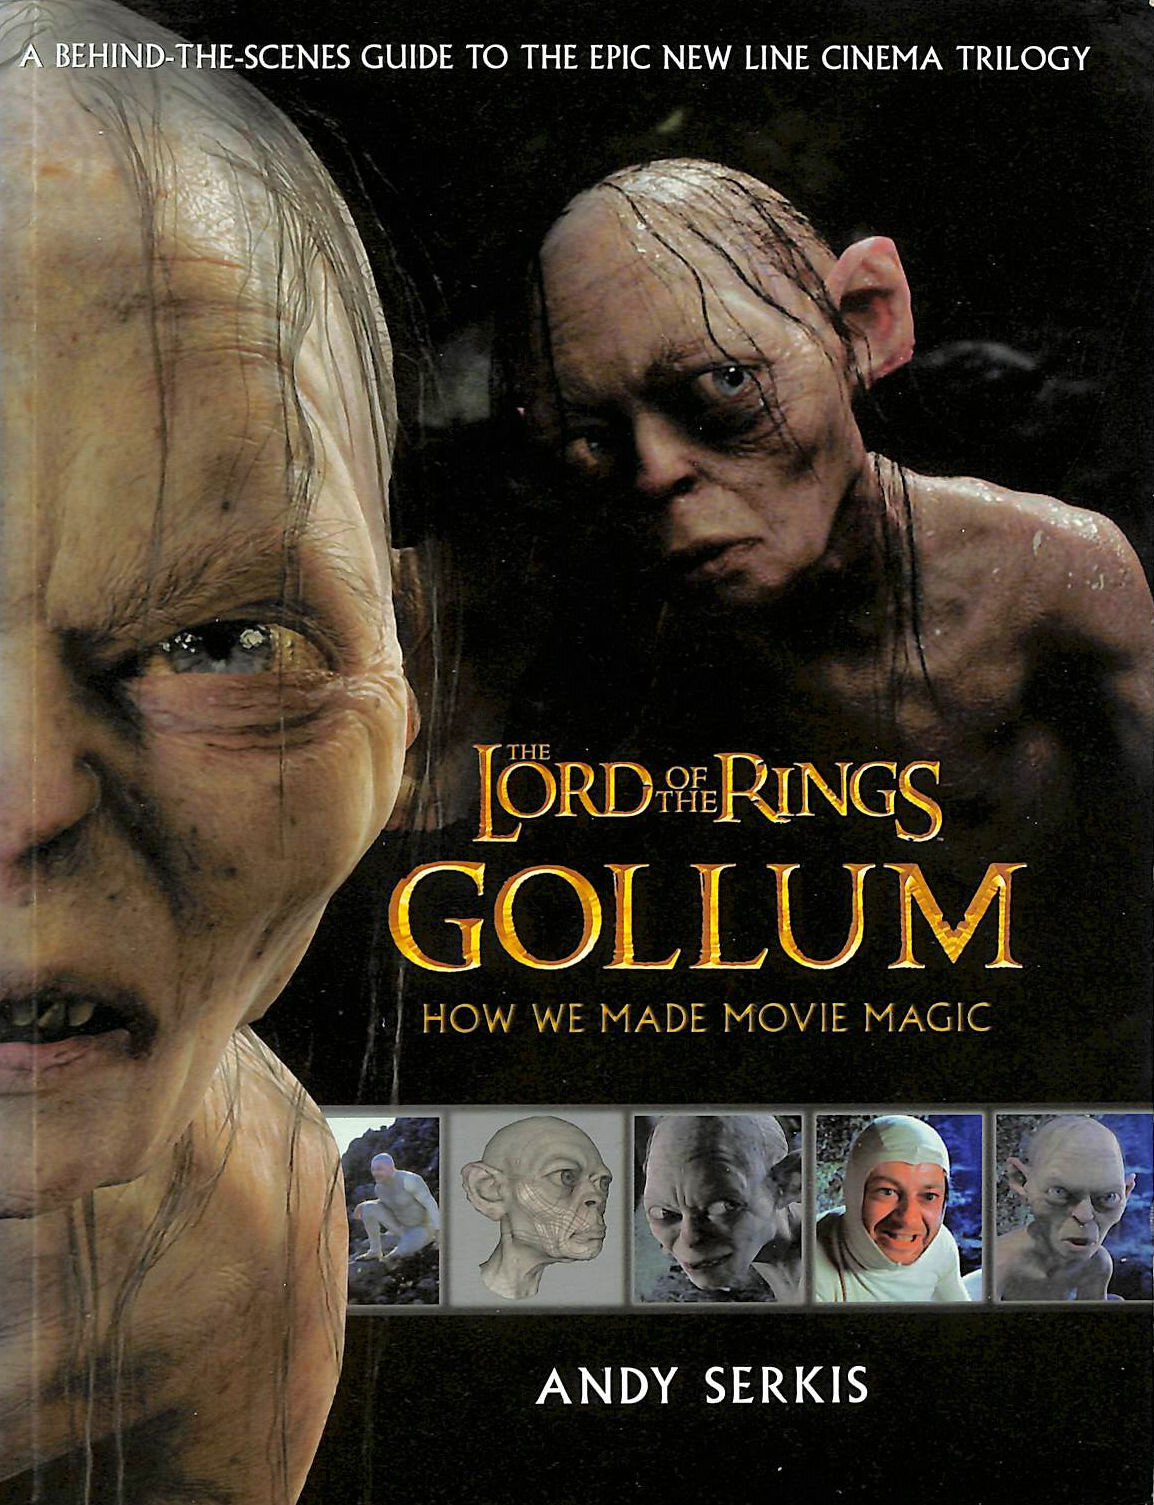 Image for The Lord of the Rings: Gollum - How We Made Movie Magic